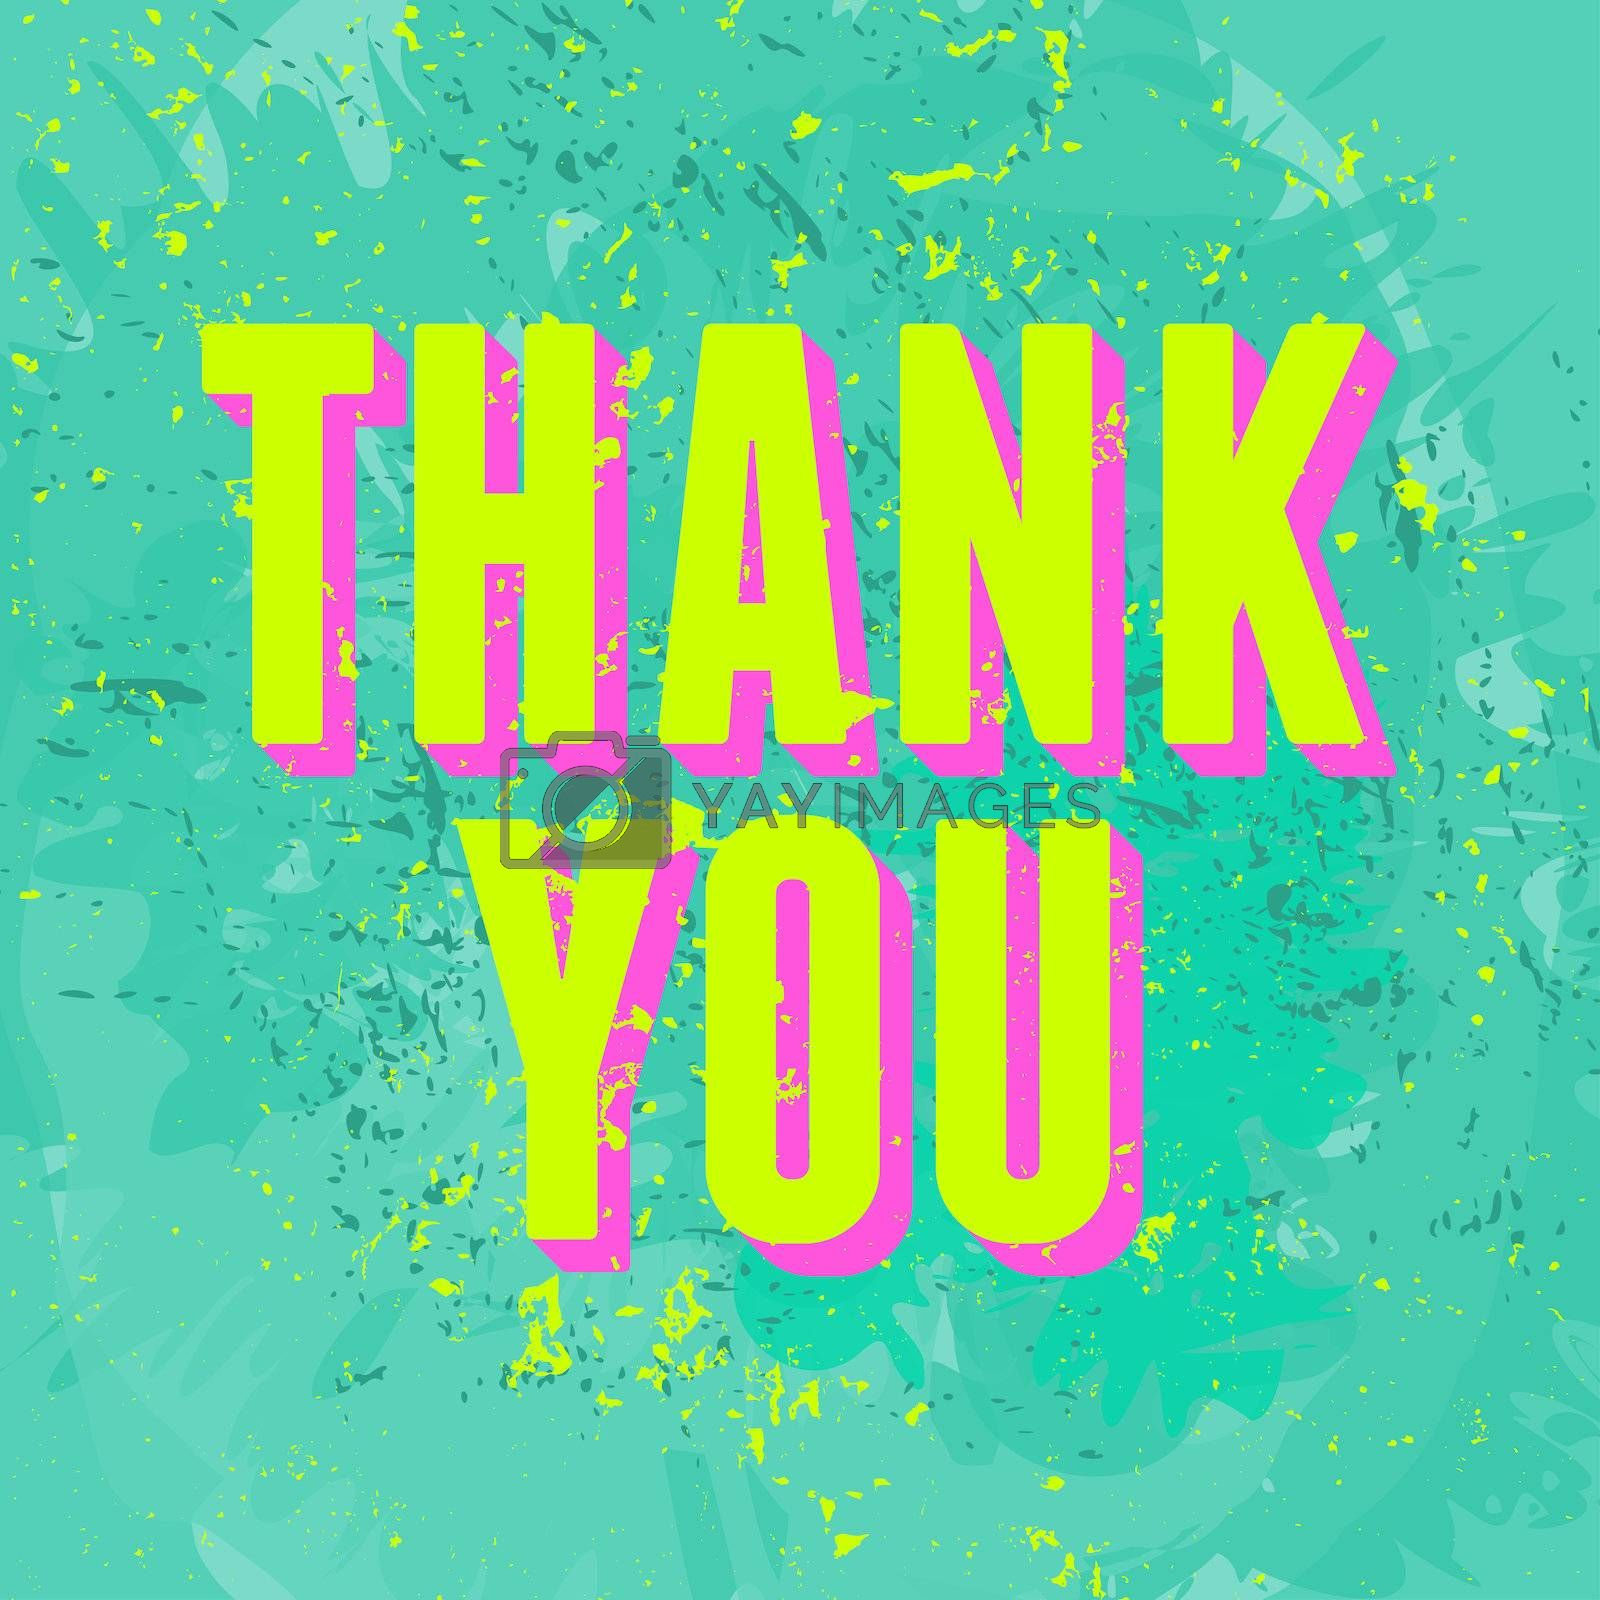 Abstract Thank You greeting card design.